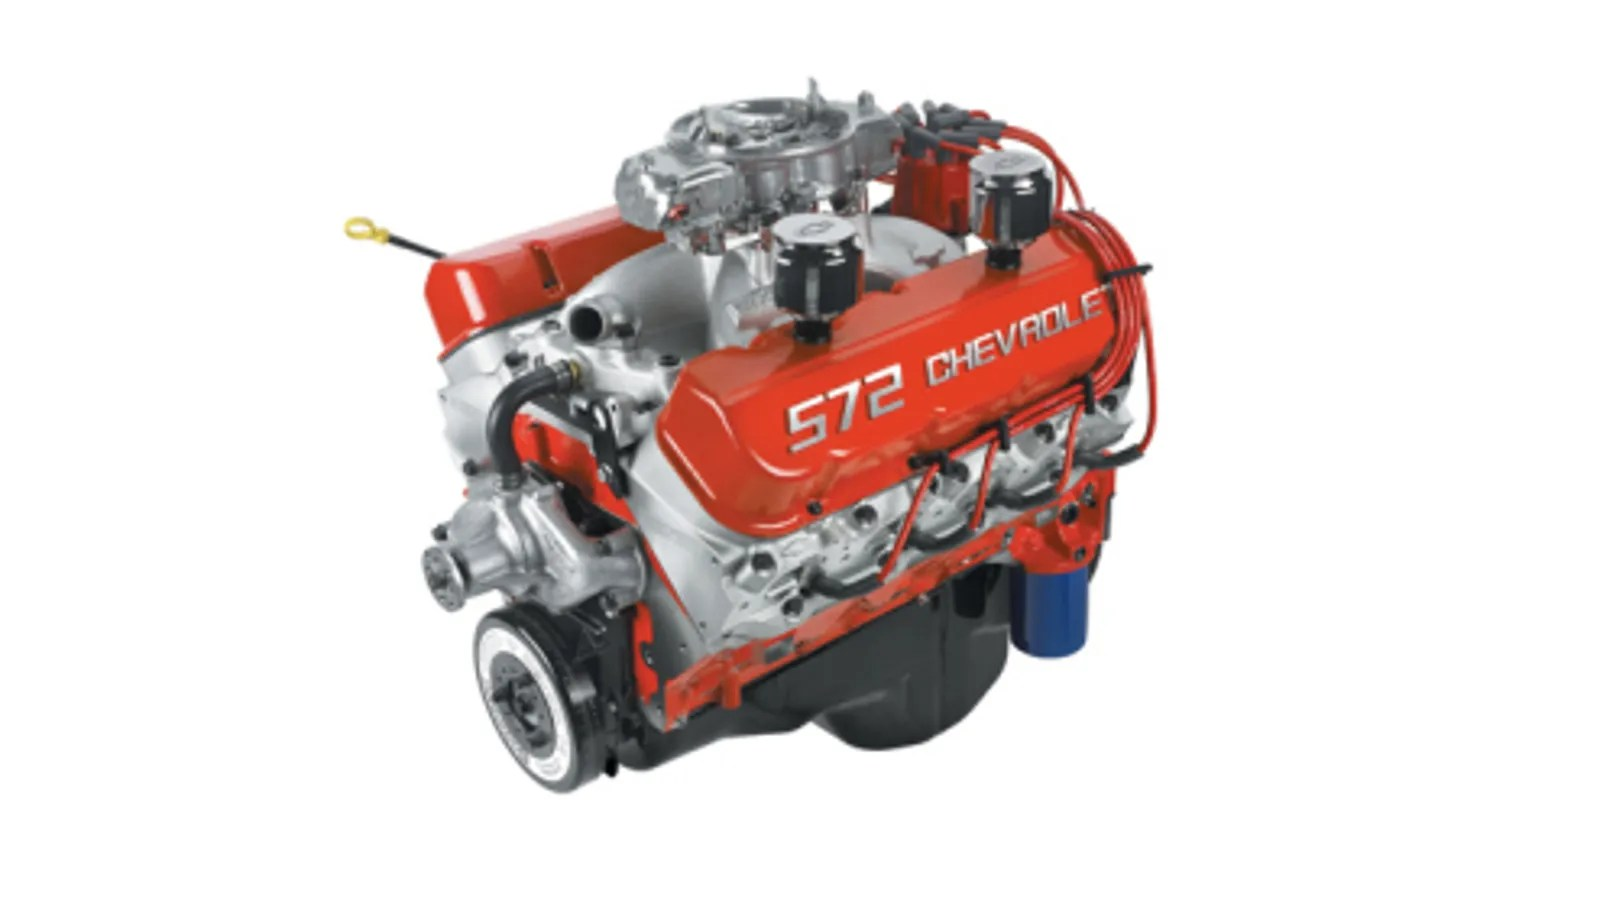 Crate Motors Gm Crate Engines Available Direct From Gm For A Price